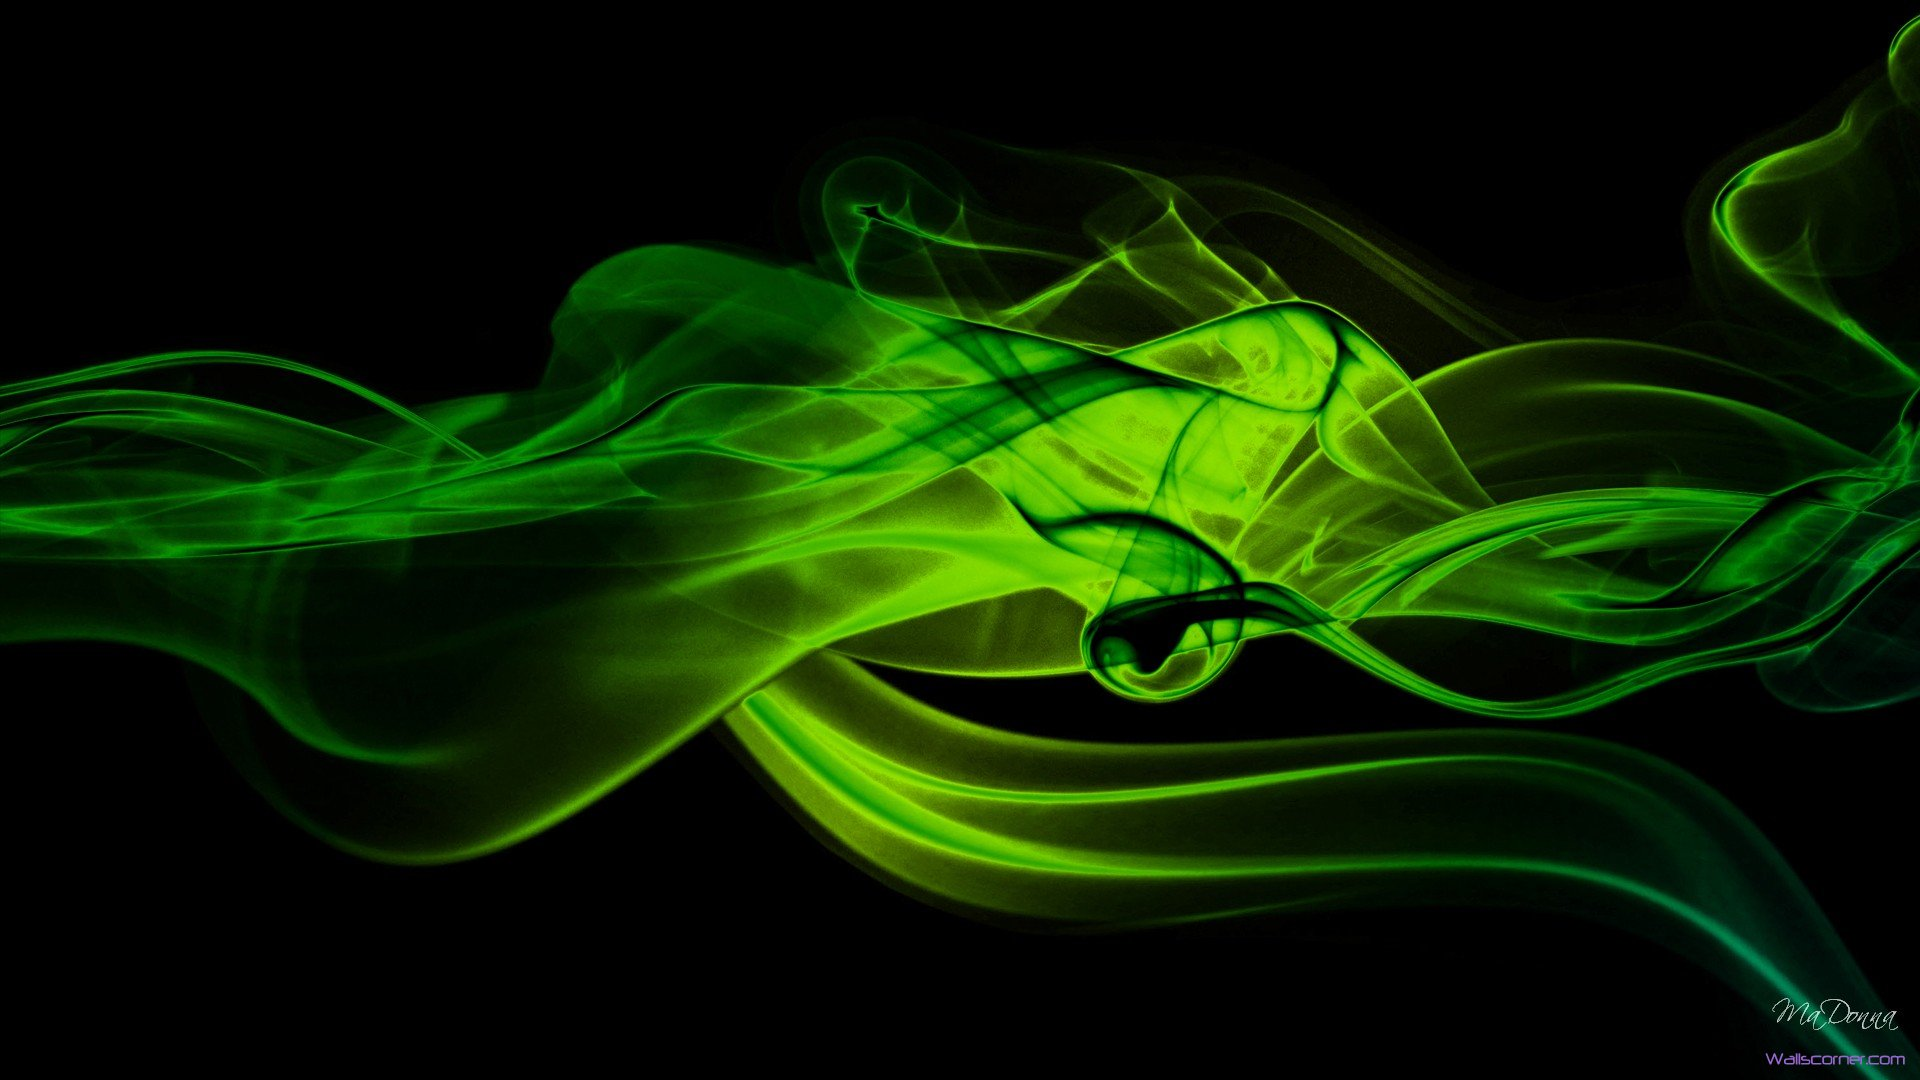 Download Of Green Smoke Abstract Beauty Green Smoke Abstract Hd